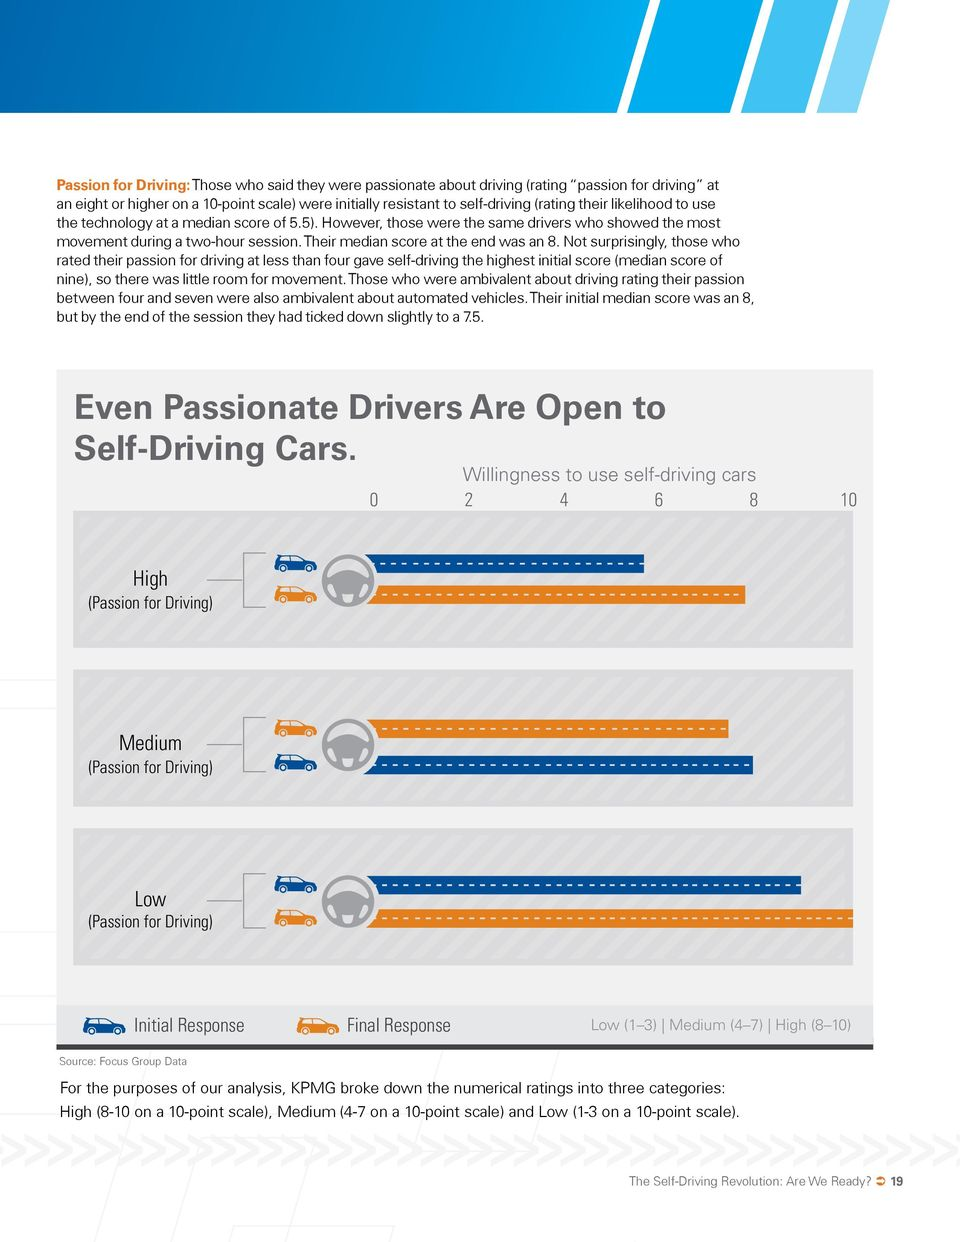 Not surprisingly, those who rated their passion for driving at less than four gave self-driving the highest initial score (median score of nine), so there was little room for movement.